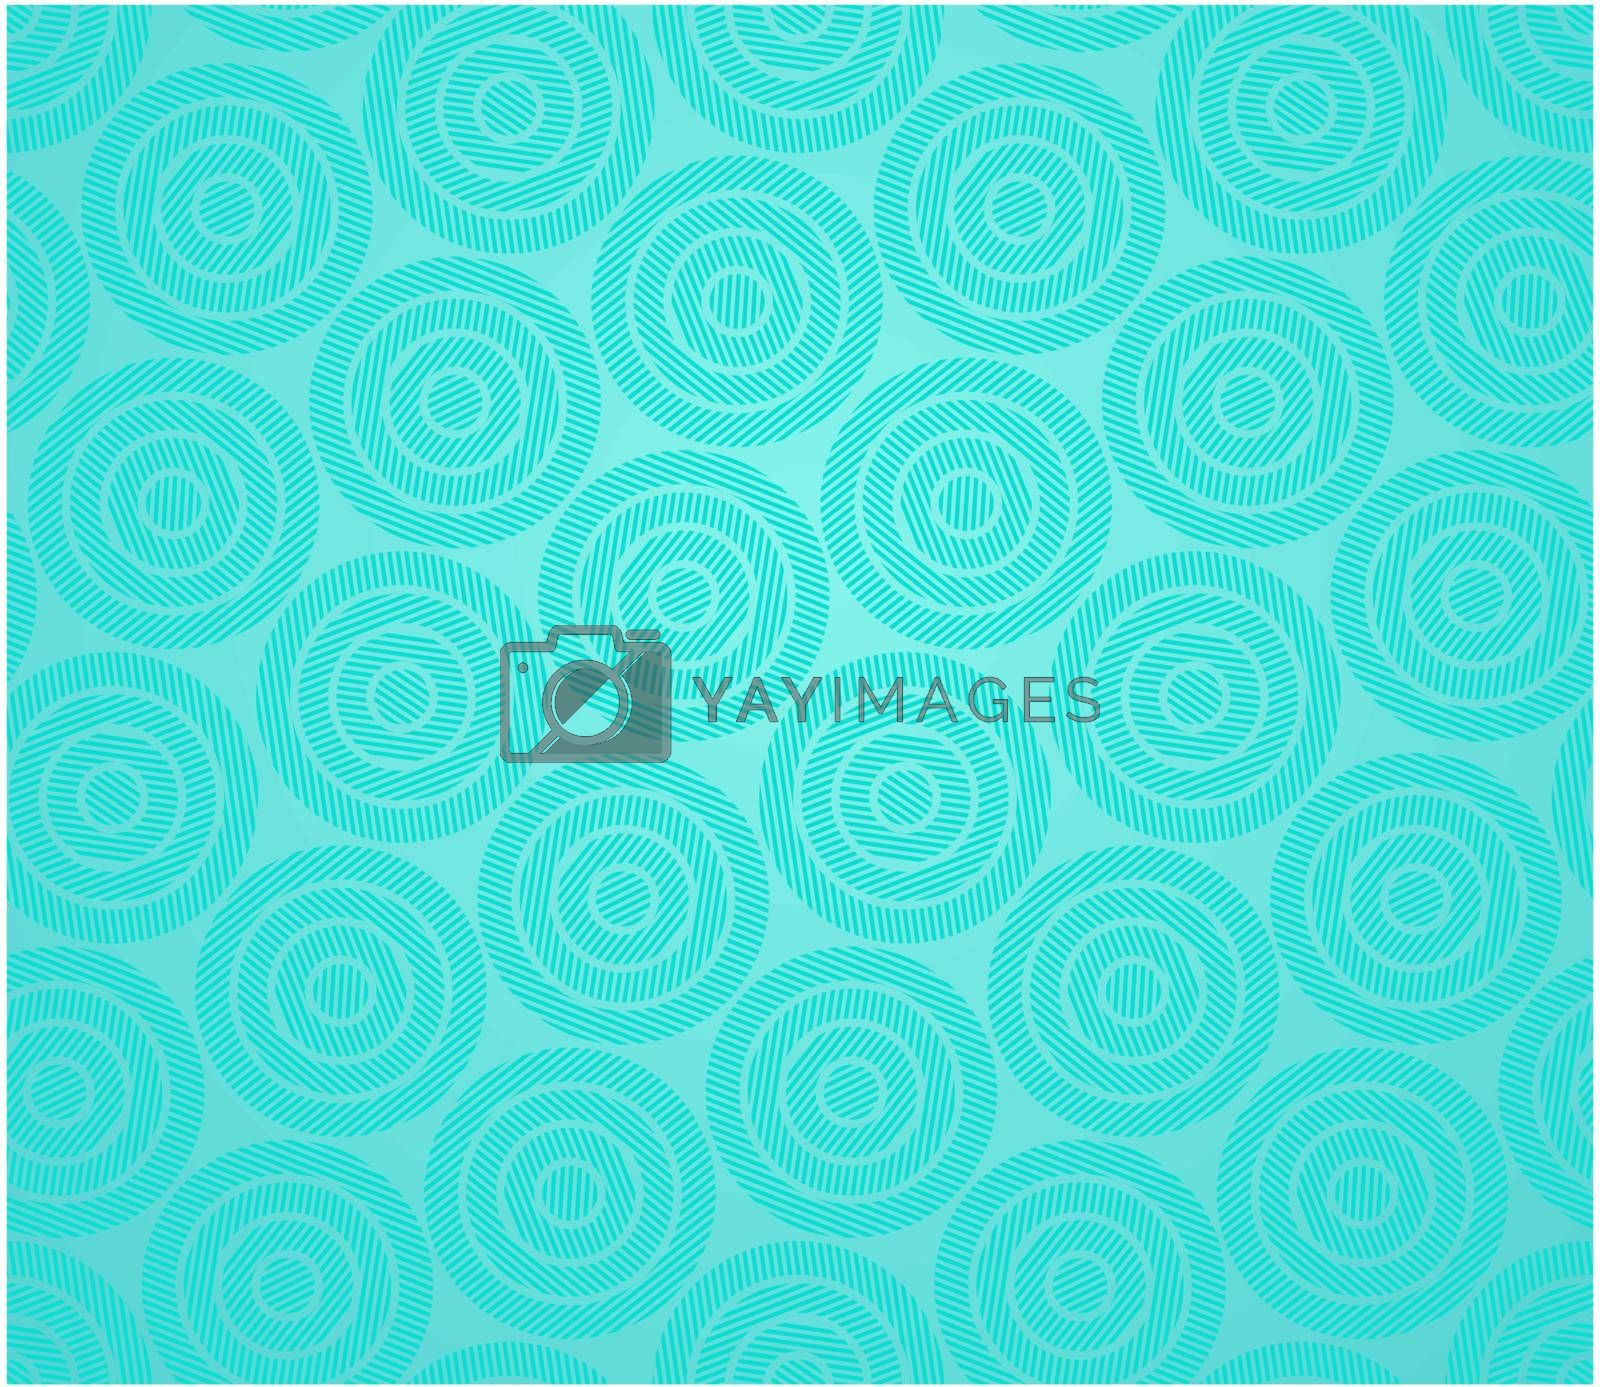 The monochrome abstract green background